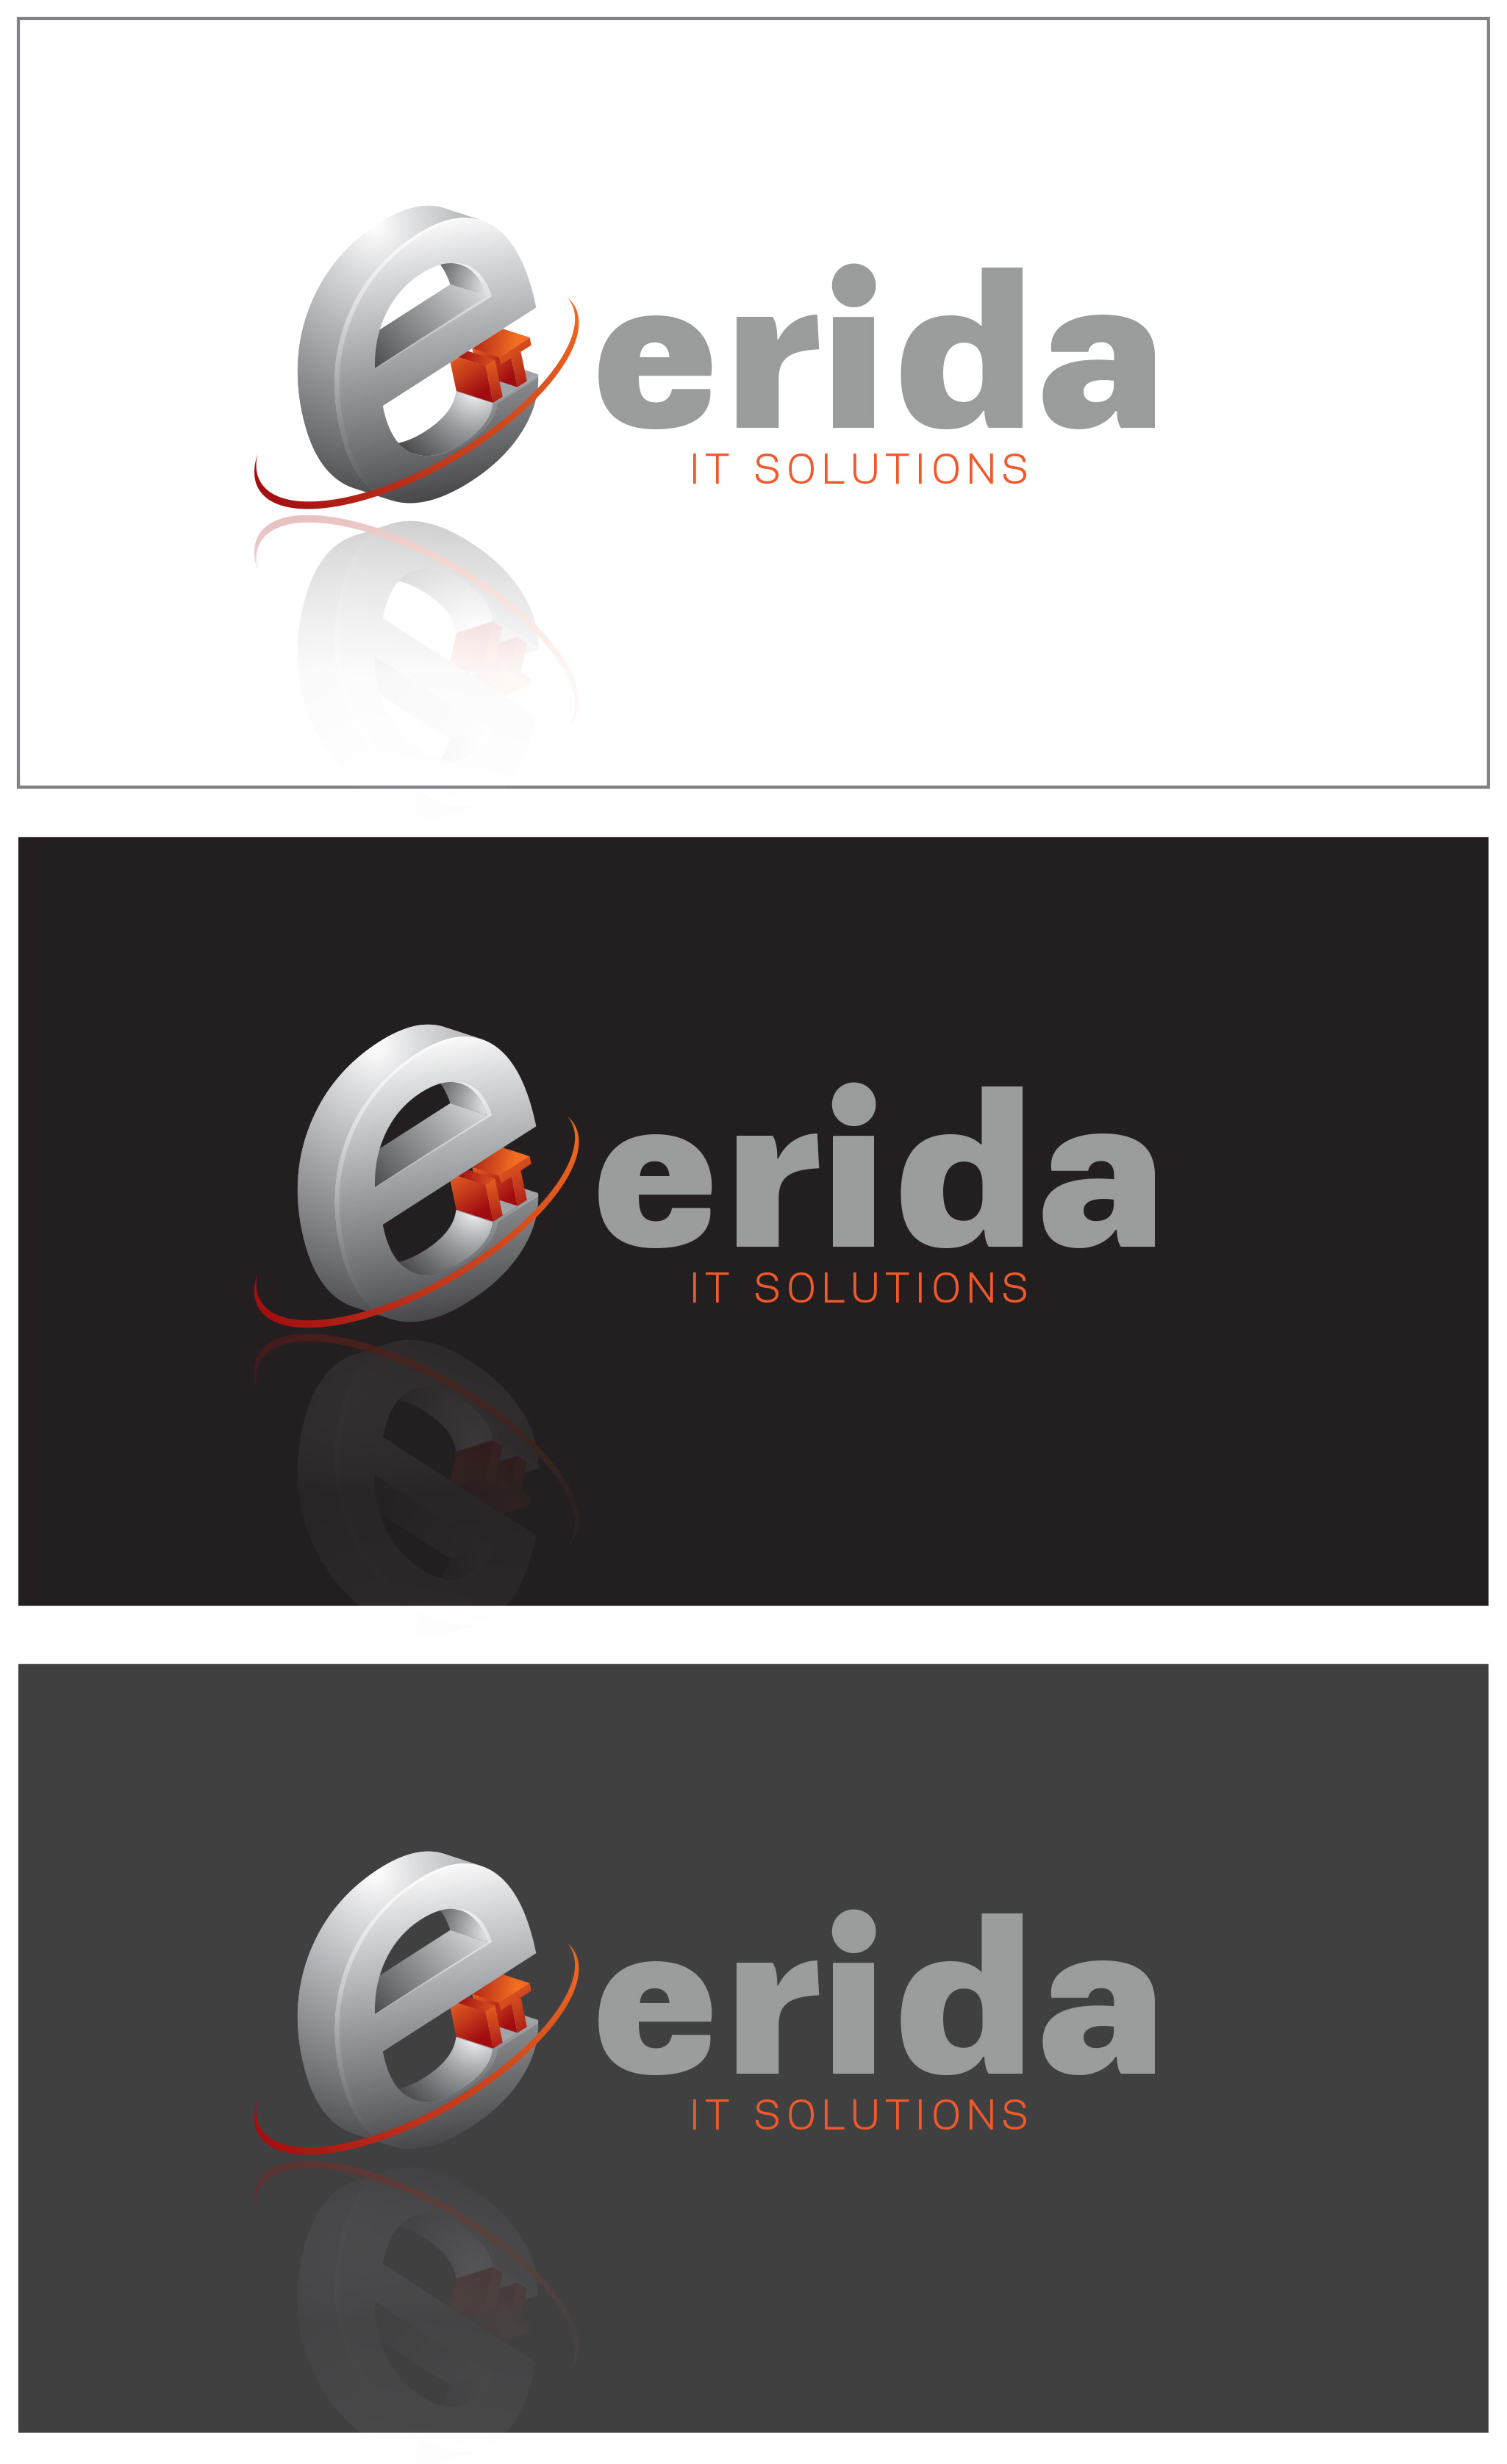 Logo Design by Roza Apostolska - Entry No. 84 in the Logo Design Contest Inspiring Logo design for Erida it solutions.